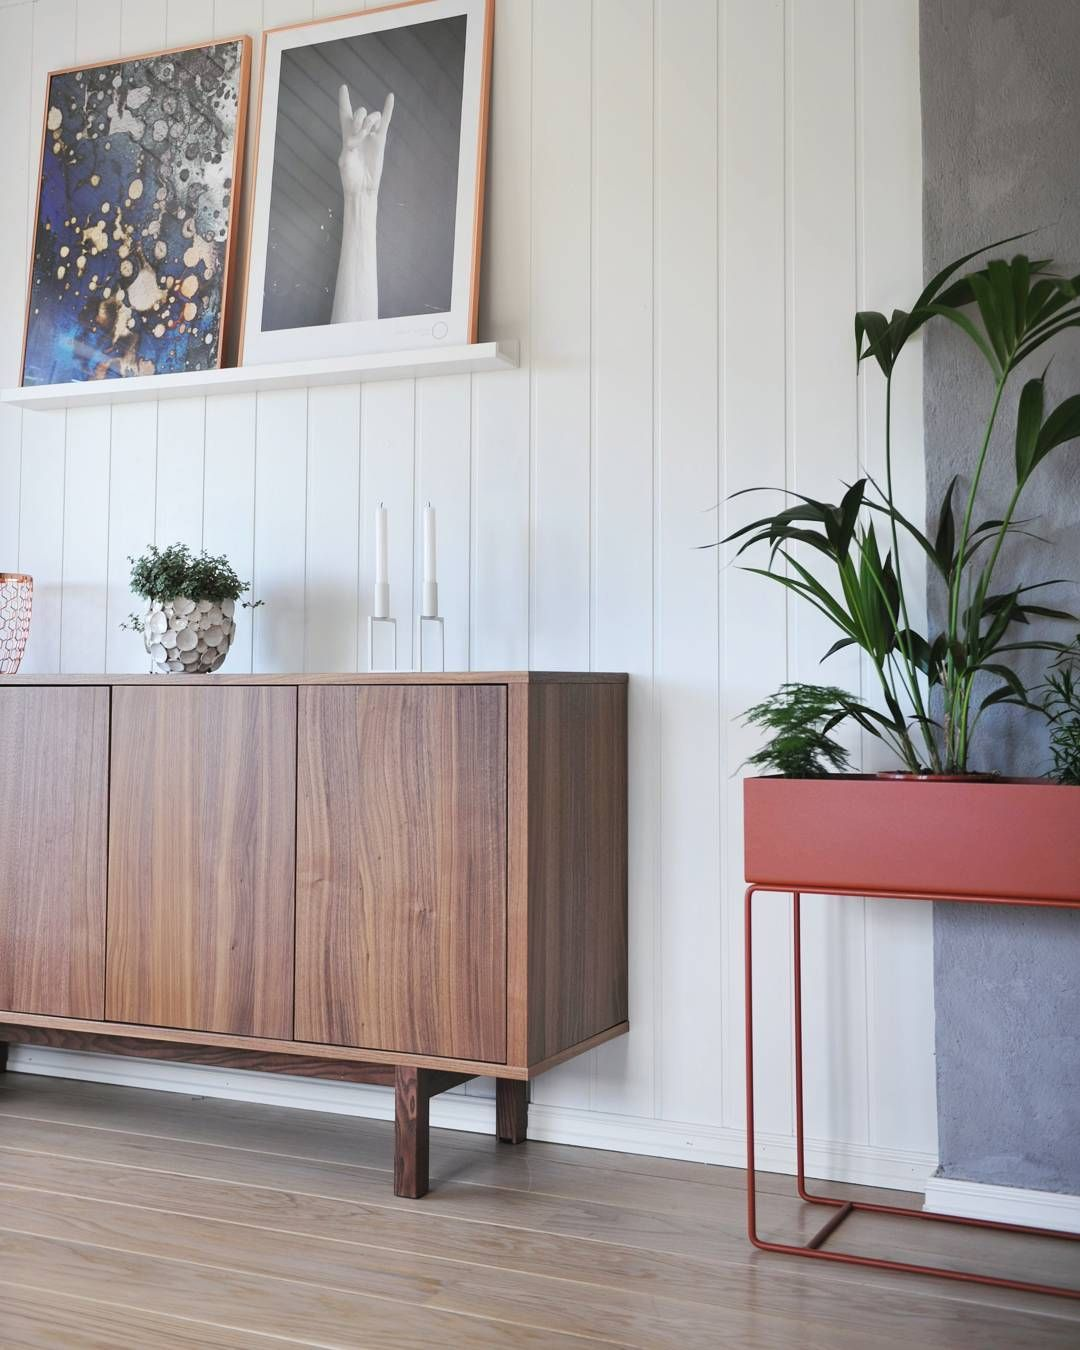 Ikea 'Stockholm' sideboard (With images) Home decor